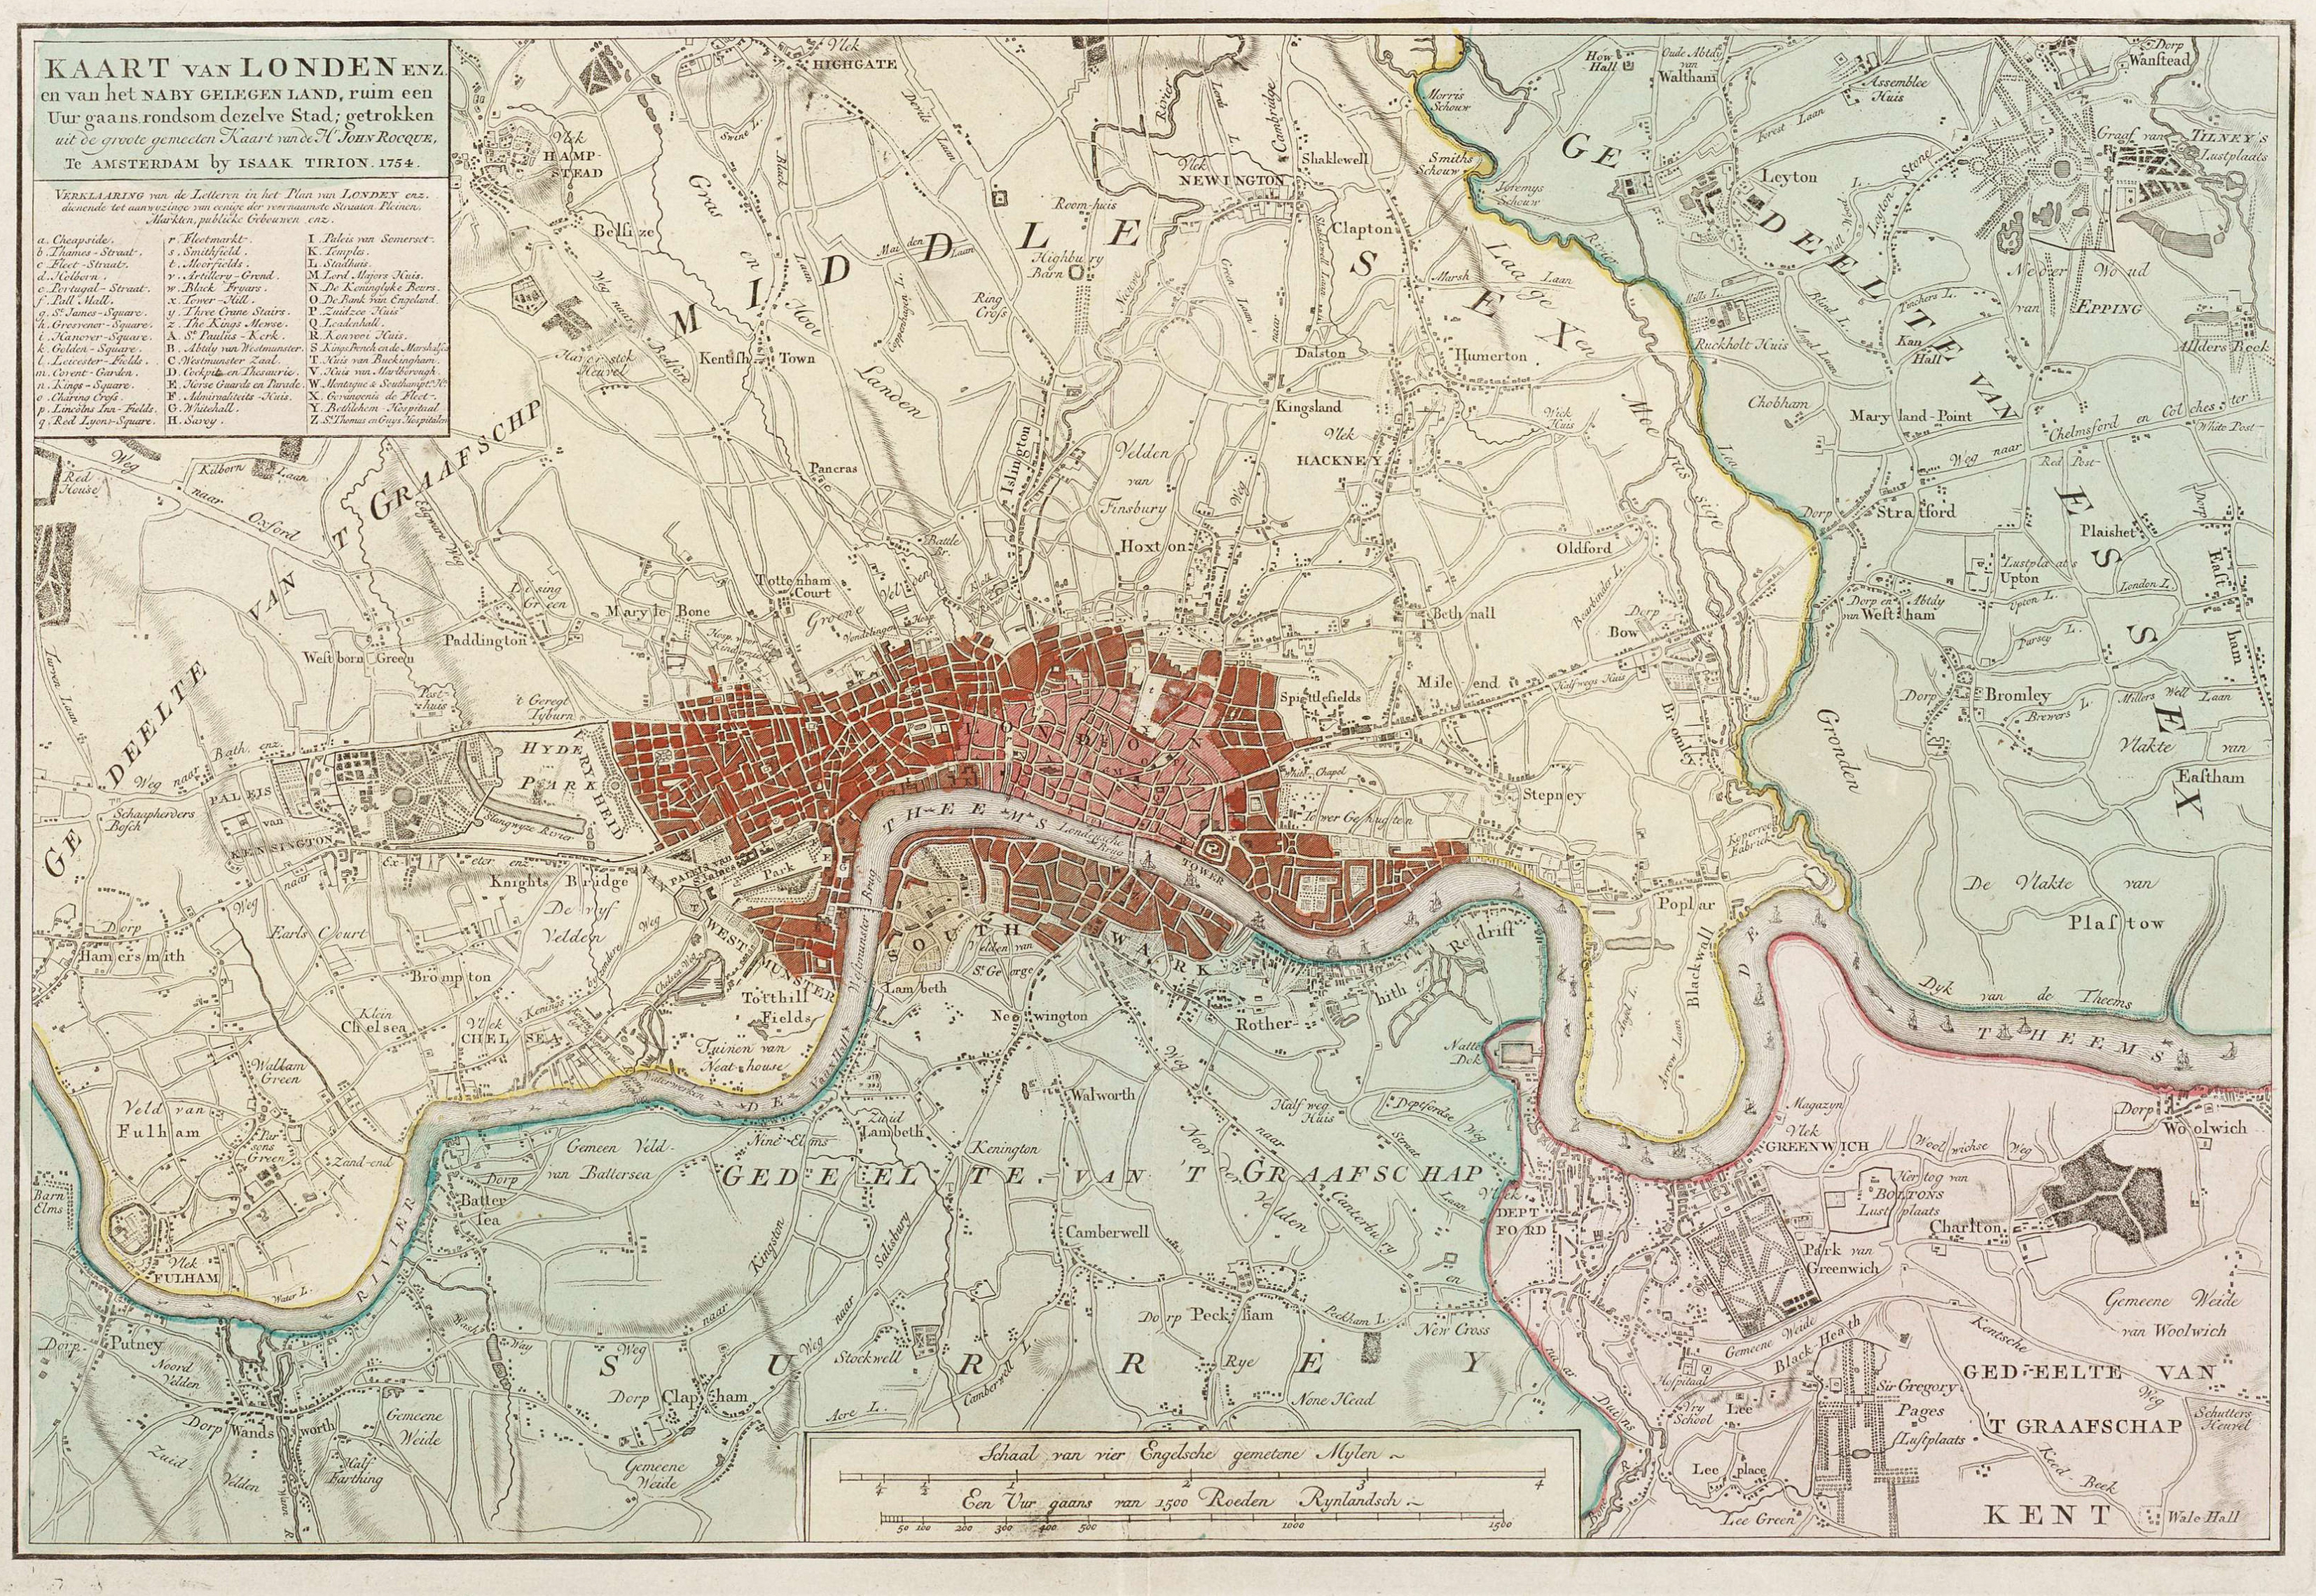 File:1754 Map of London Tirion.jpg